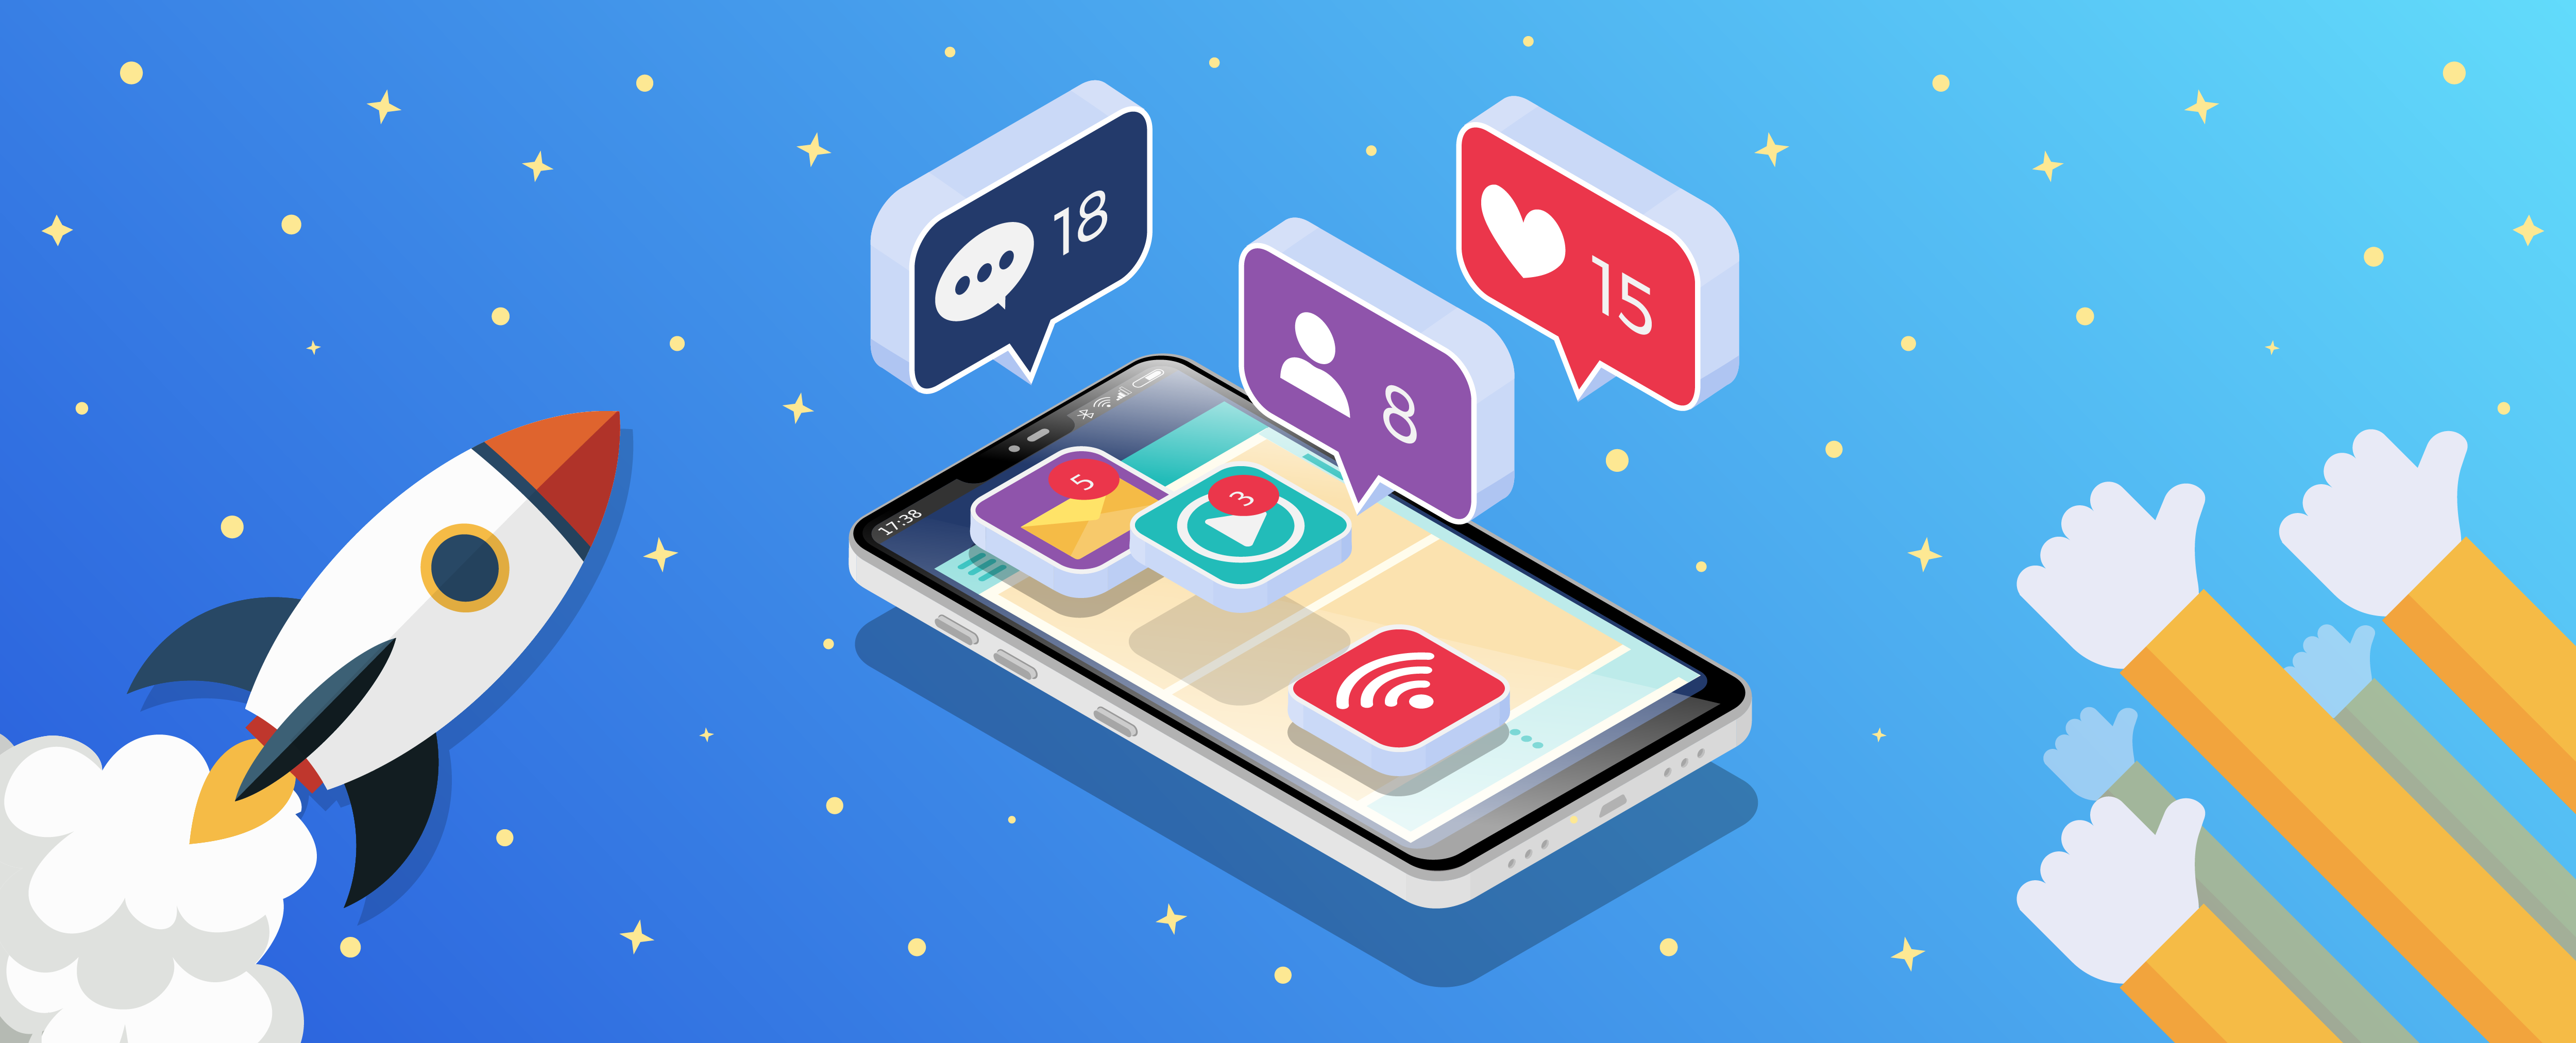 8 reasons why an app for your info product could be the tipping point